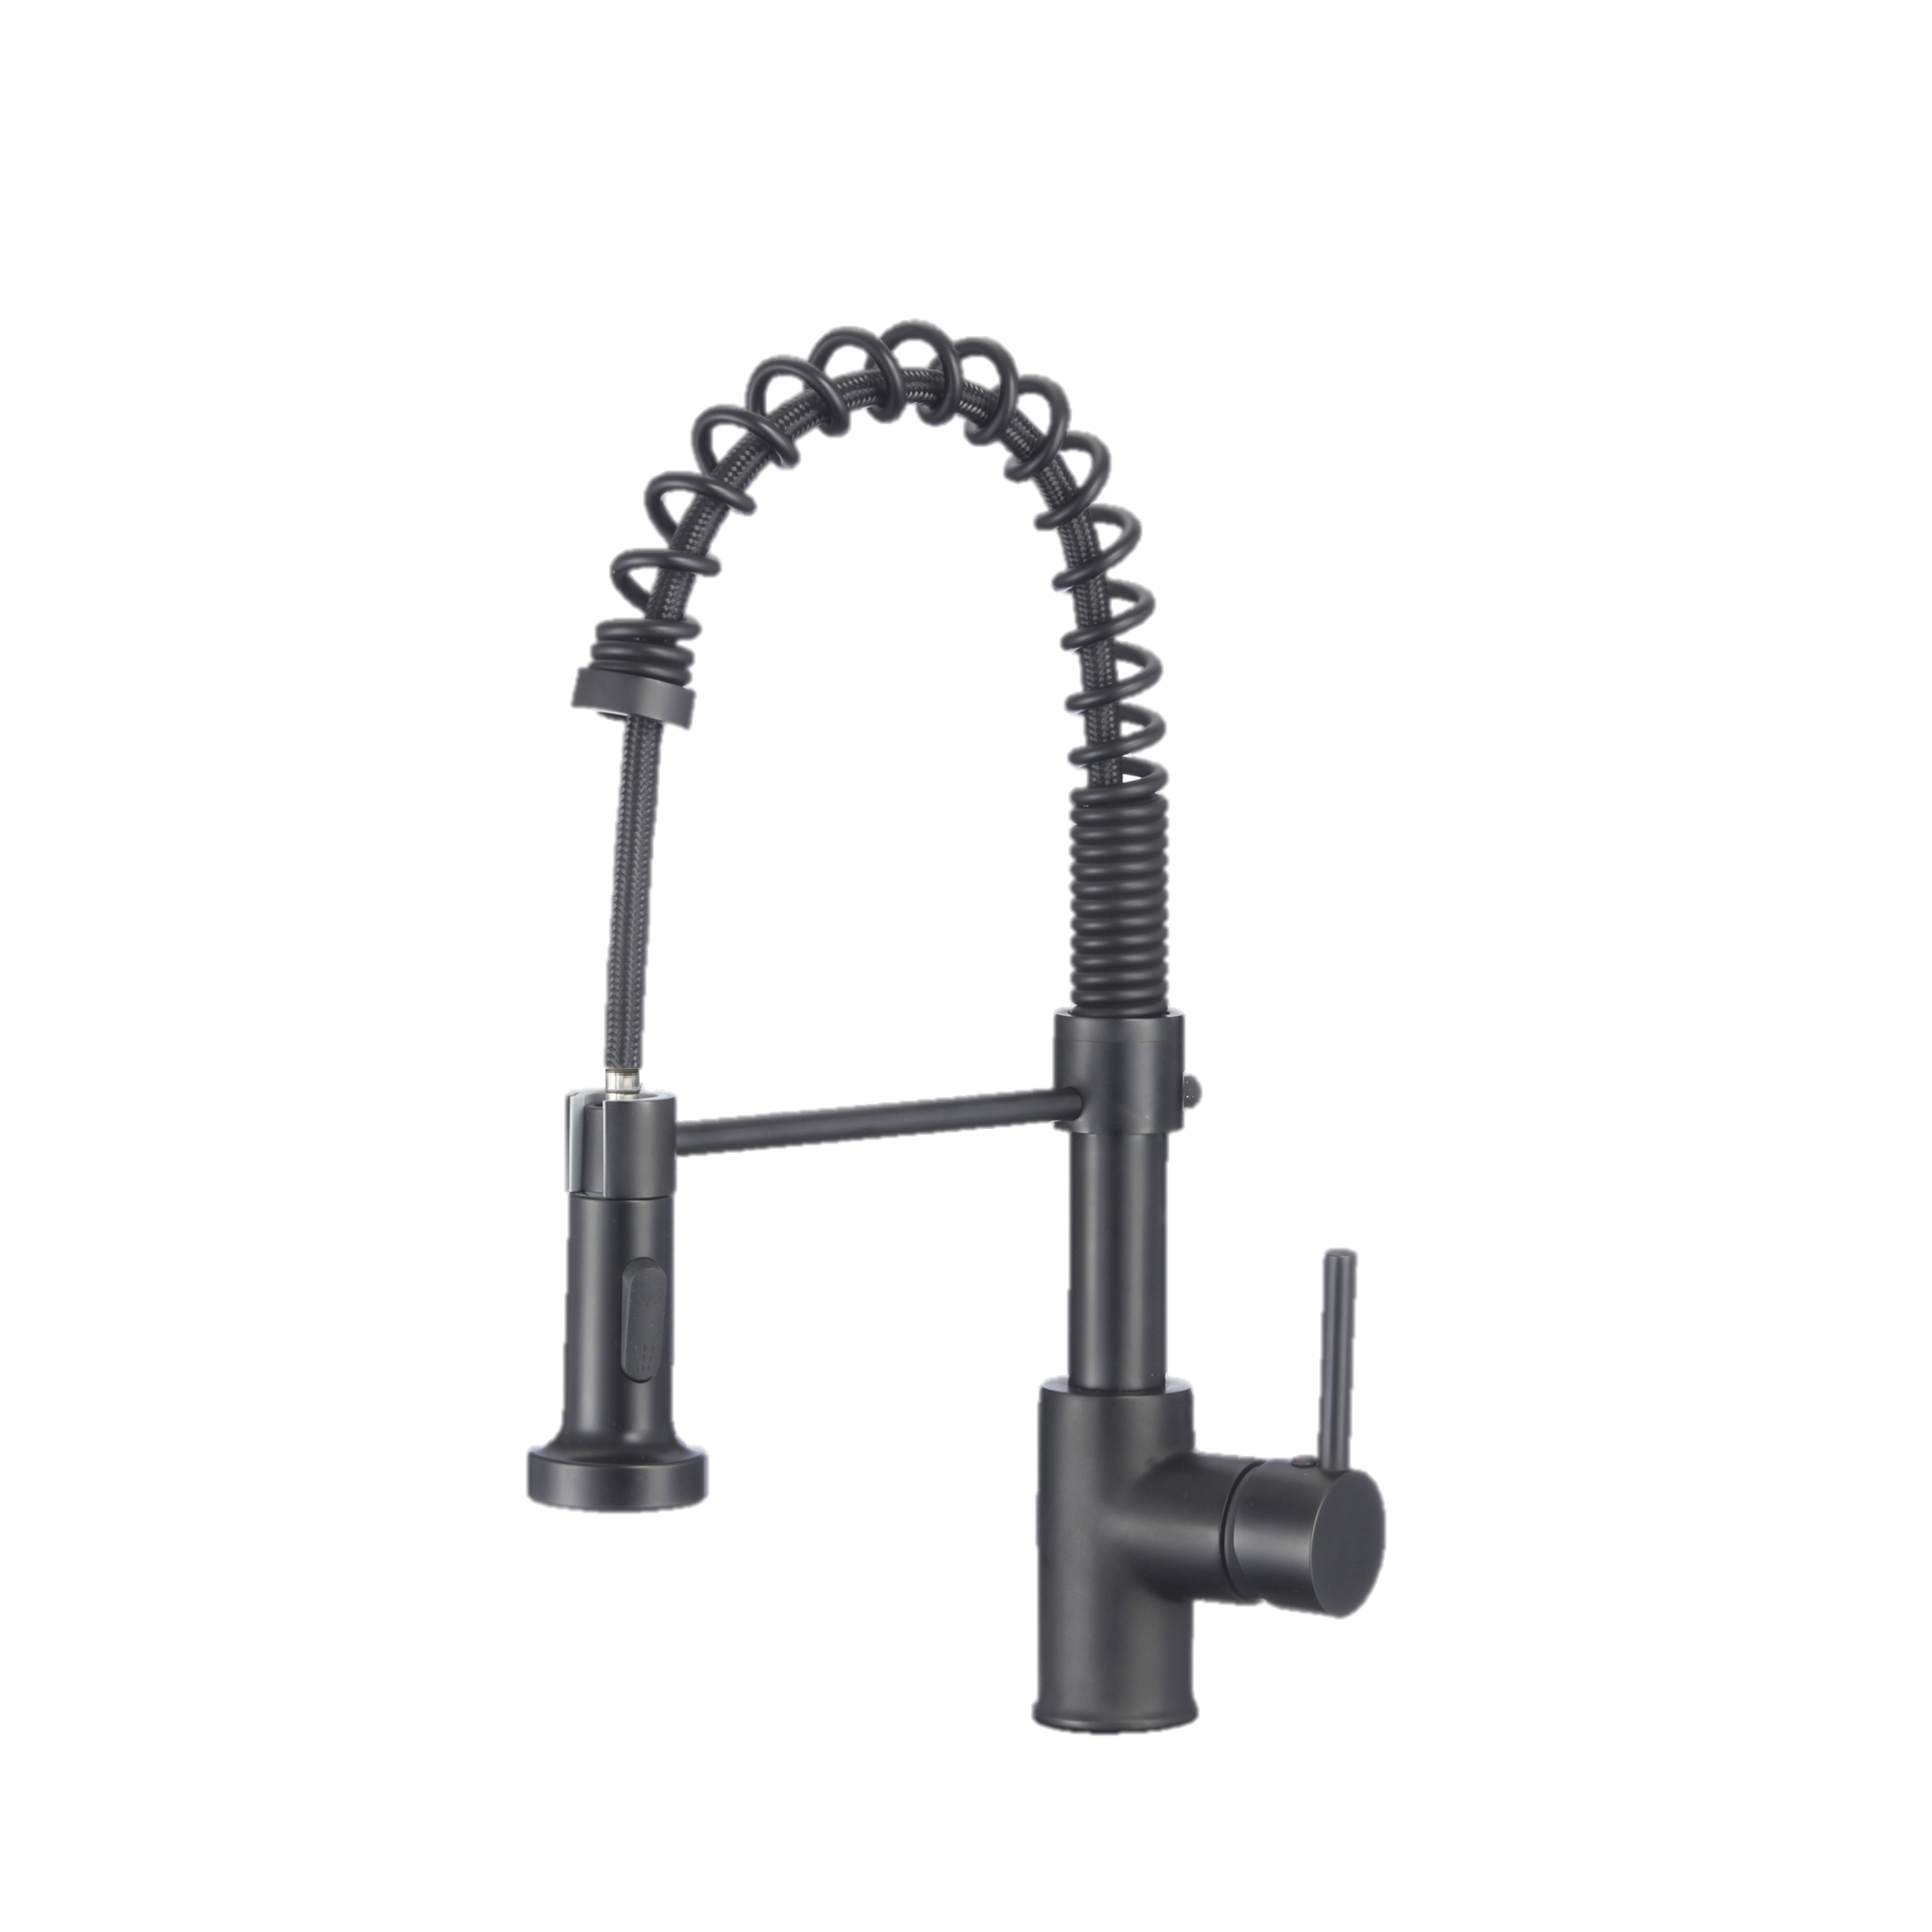 Stylish - Pull Down Kitchen Faucet  K-107N Matte Black